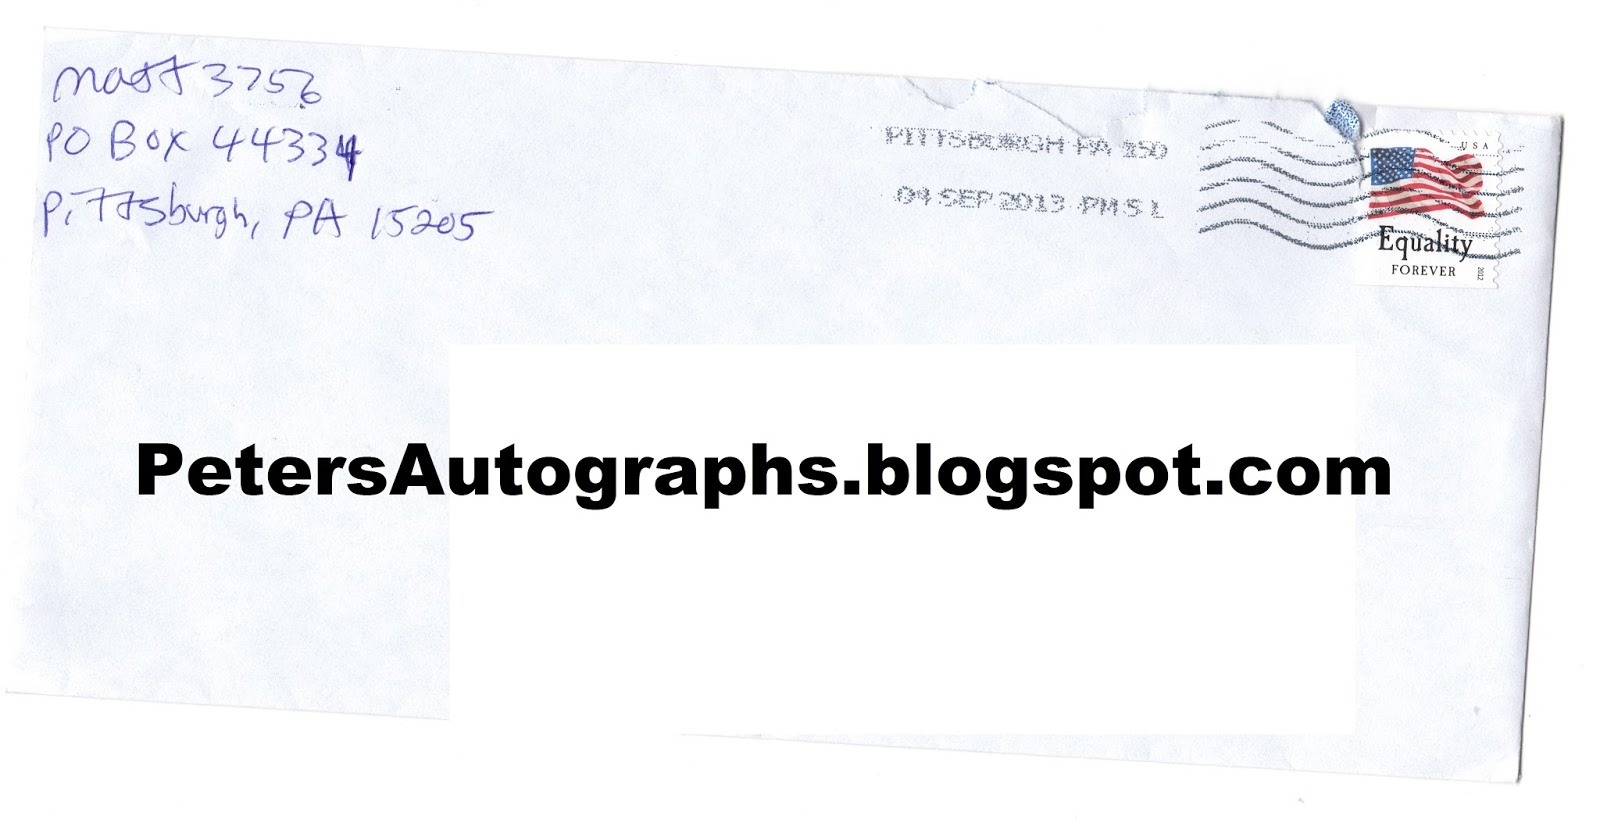 Peter's Autographs: Matt Magnone Success!